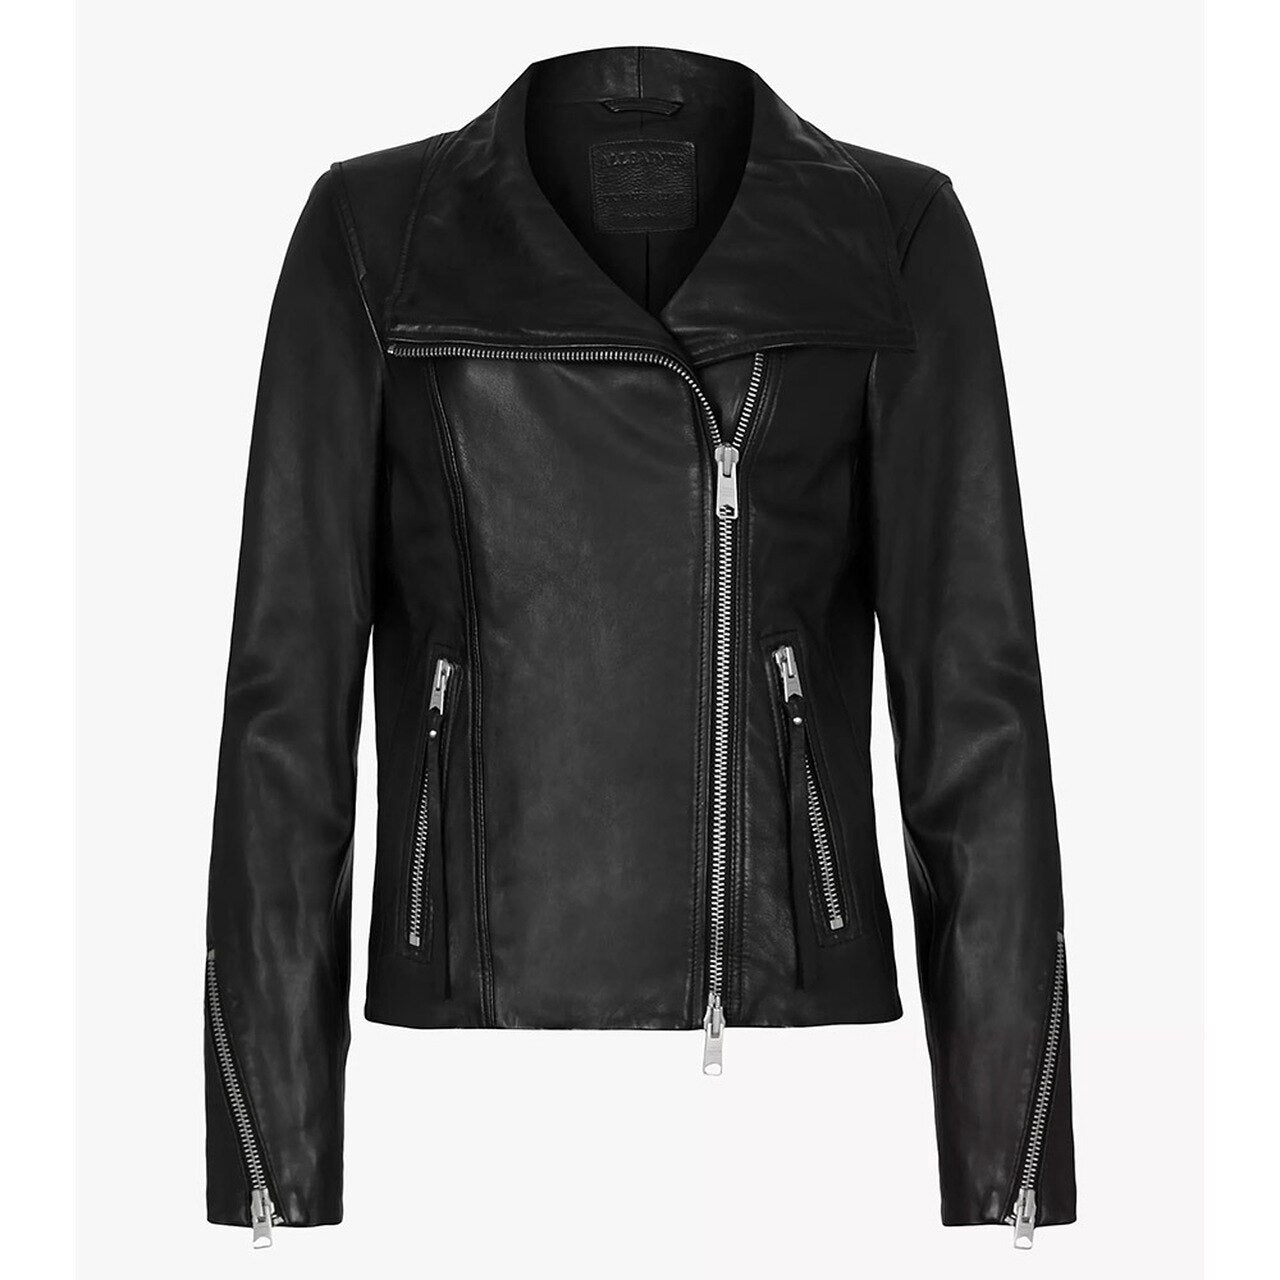 Ellis Women's Black Leather Jacket